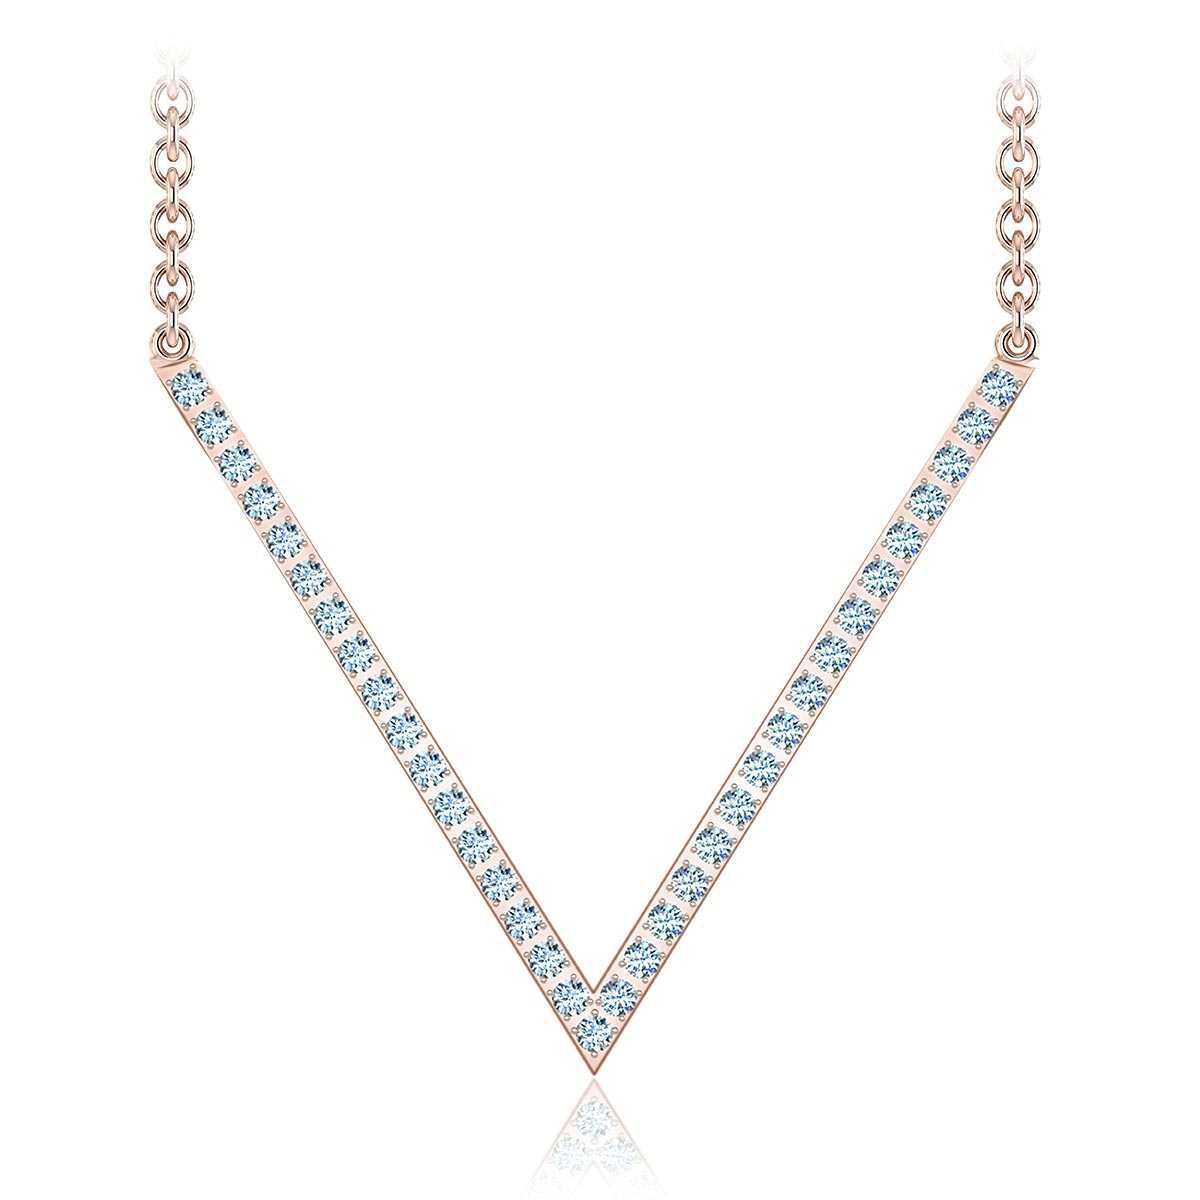 Vivre Diamond Necklace  (1/6 CT. TW.)